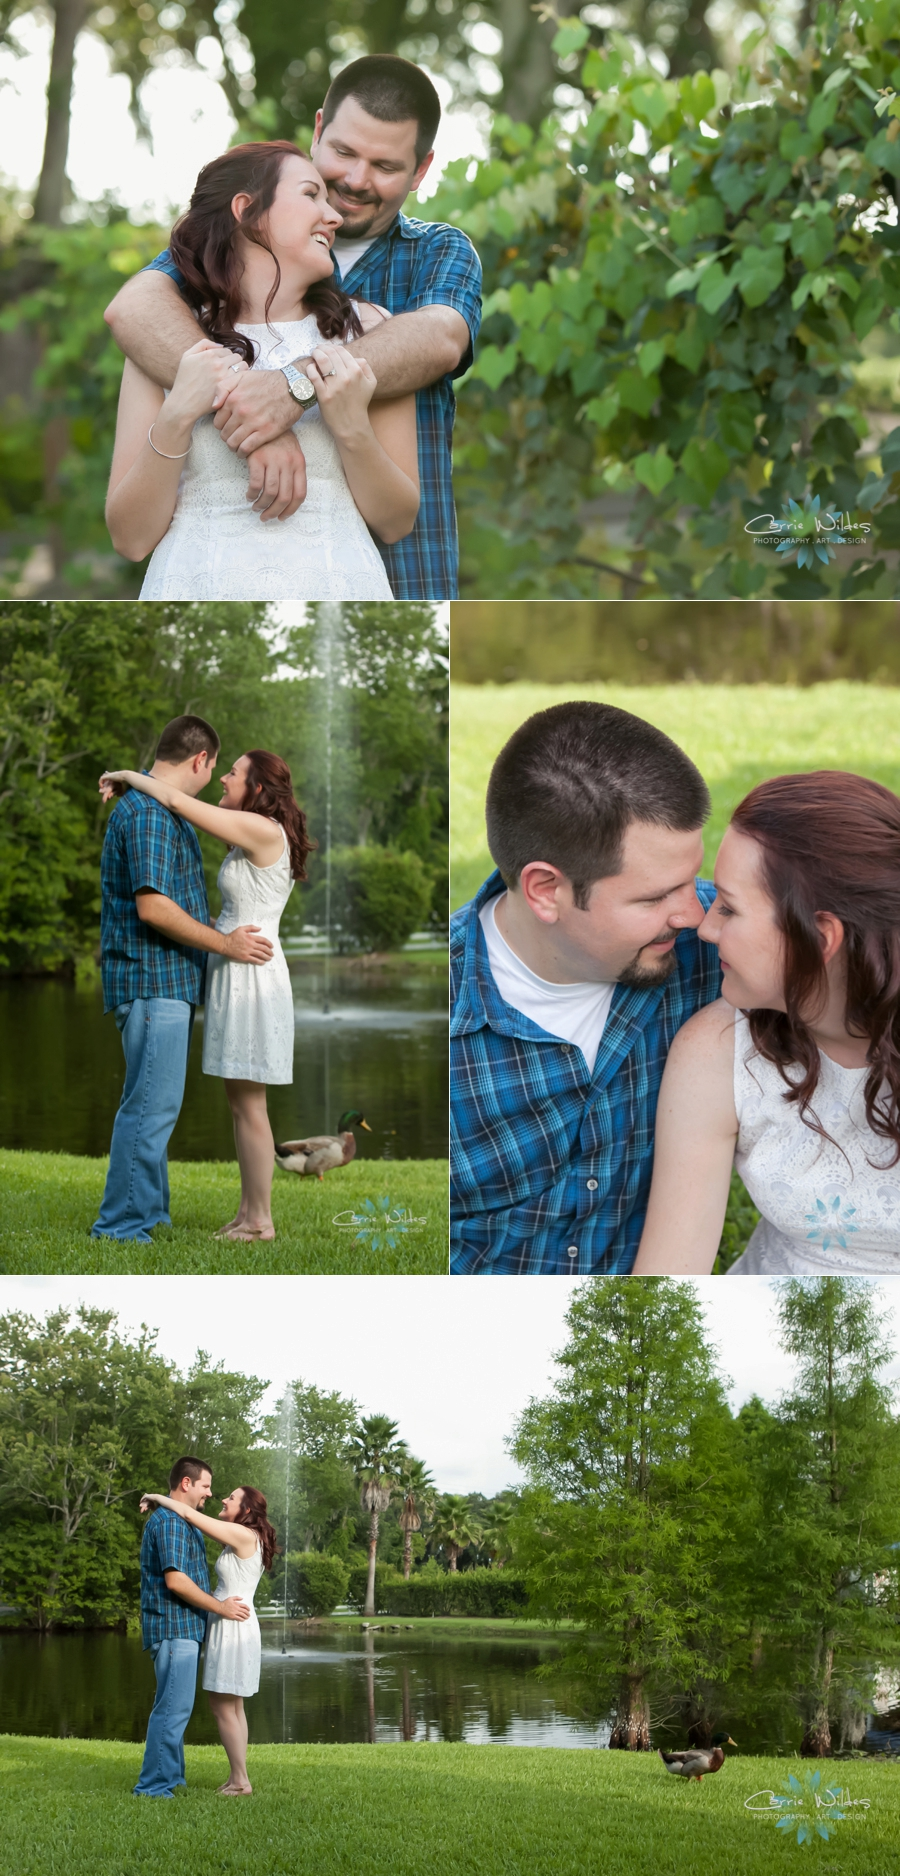 6_1_15 Keel and Curley Engagement Session_0005.jpg